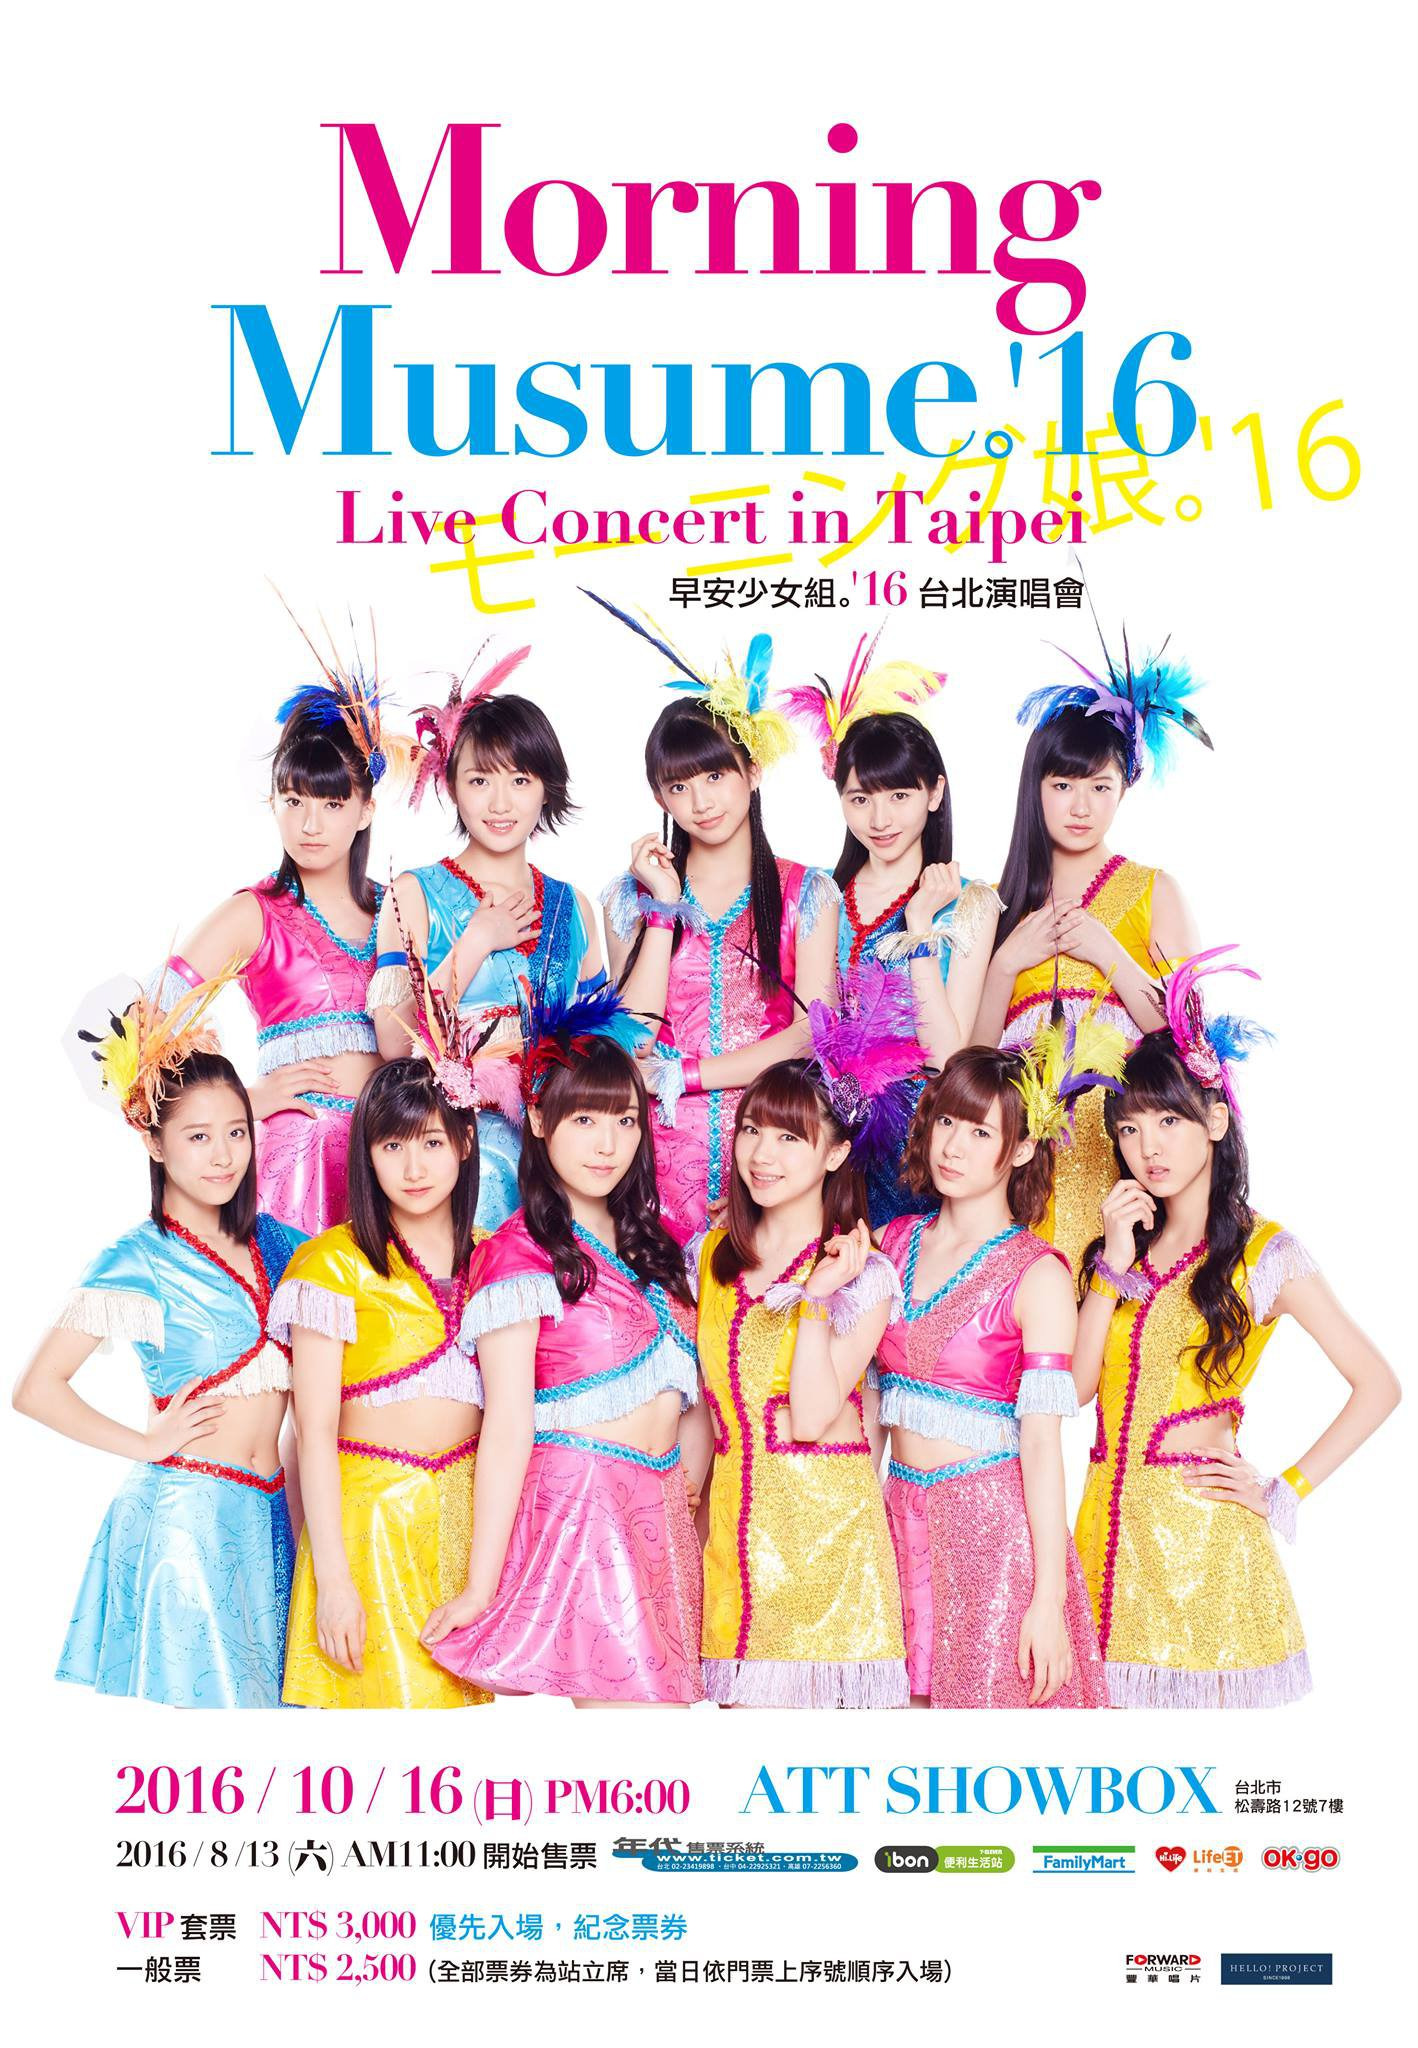 Morning Musume '16 Live Concert in Taipei